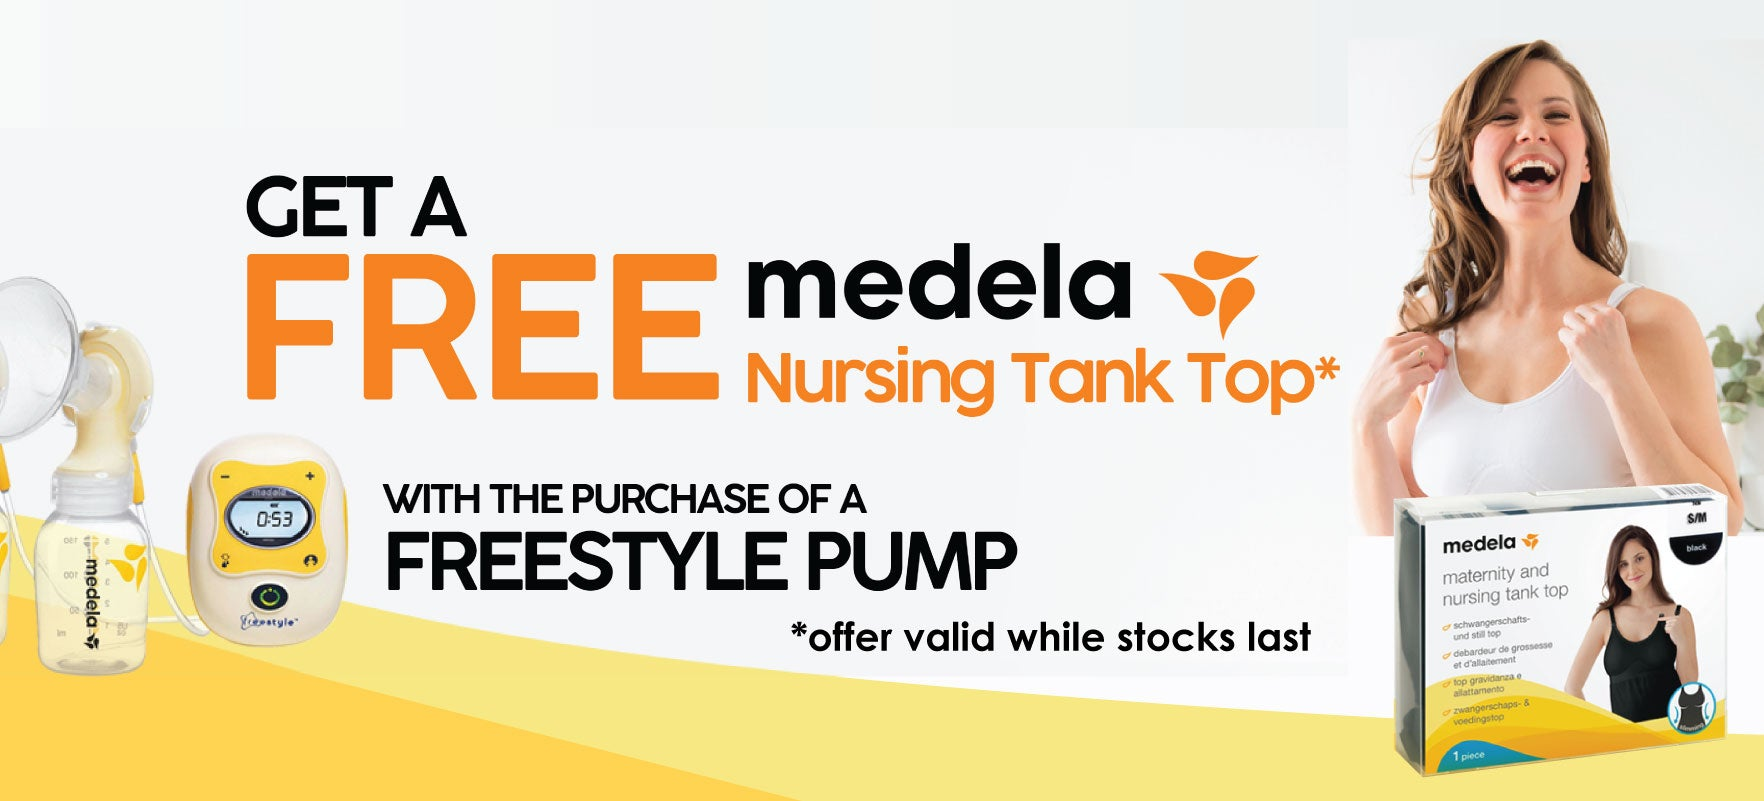 Get a FREE Medela Nursing Tank Top with the Purchase of a Freestyle Pump